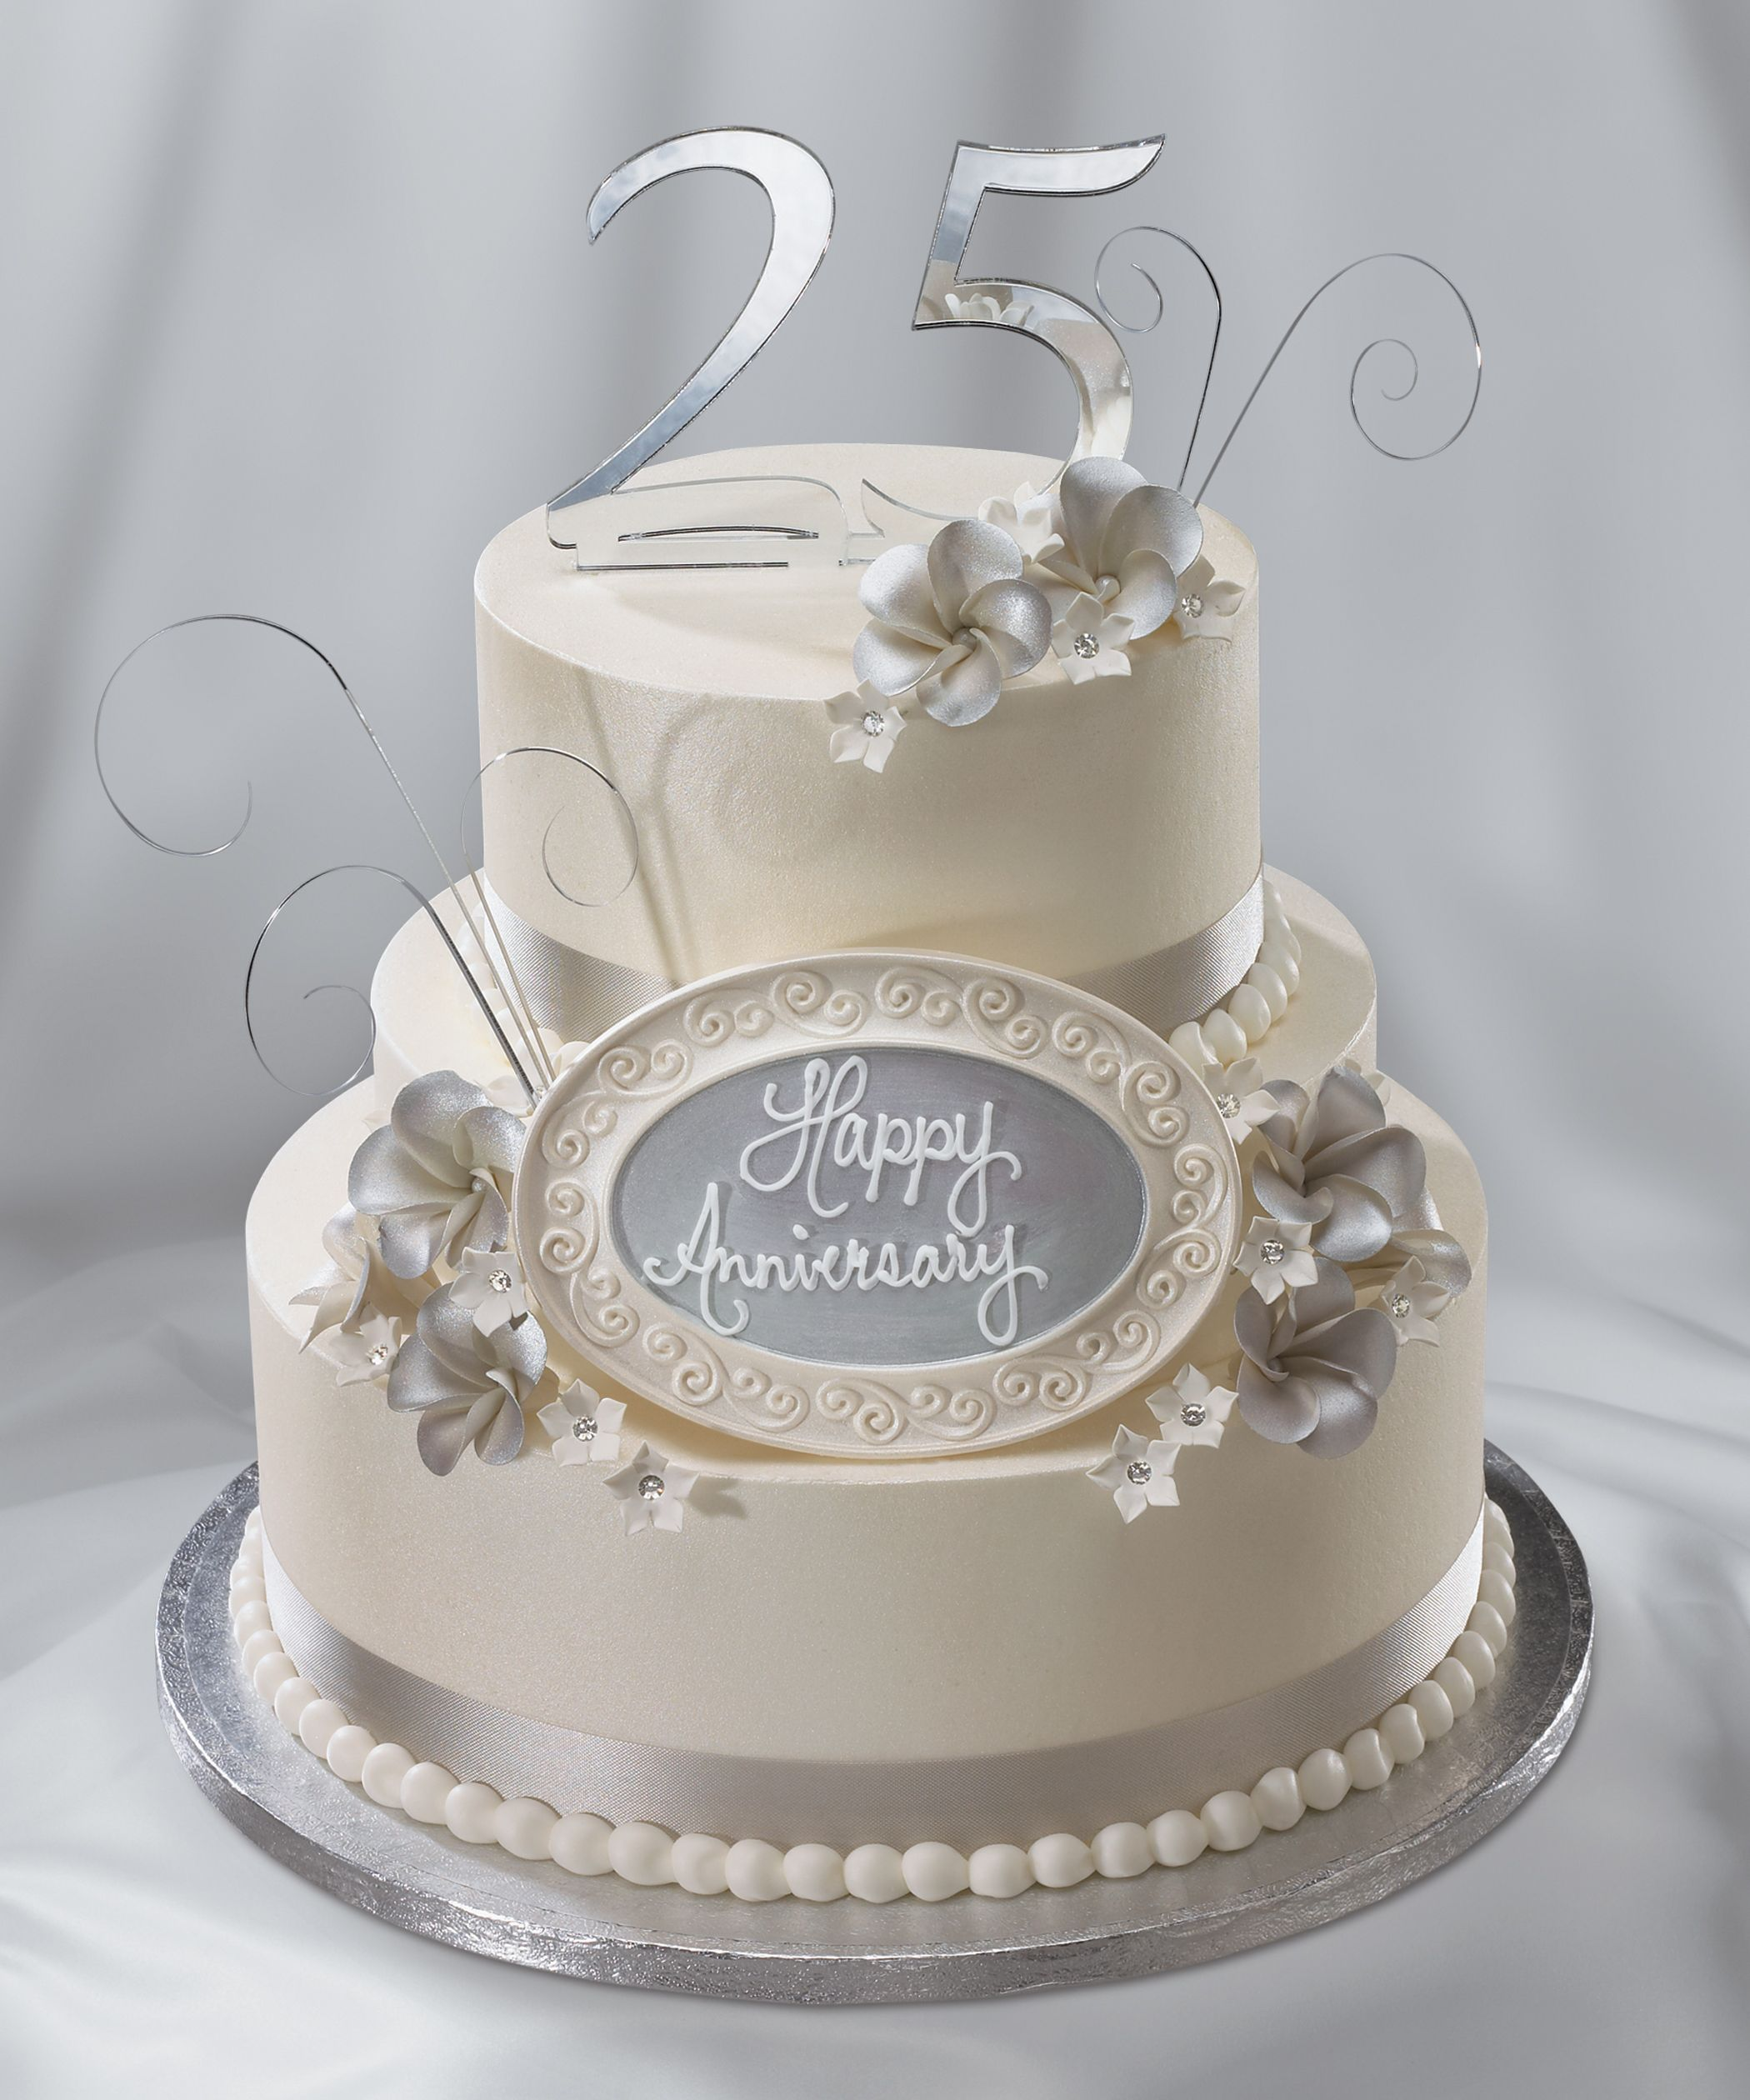 Th wedding anniversary cake silver quot i do